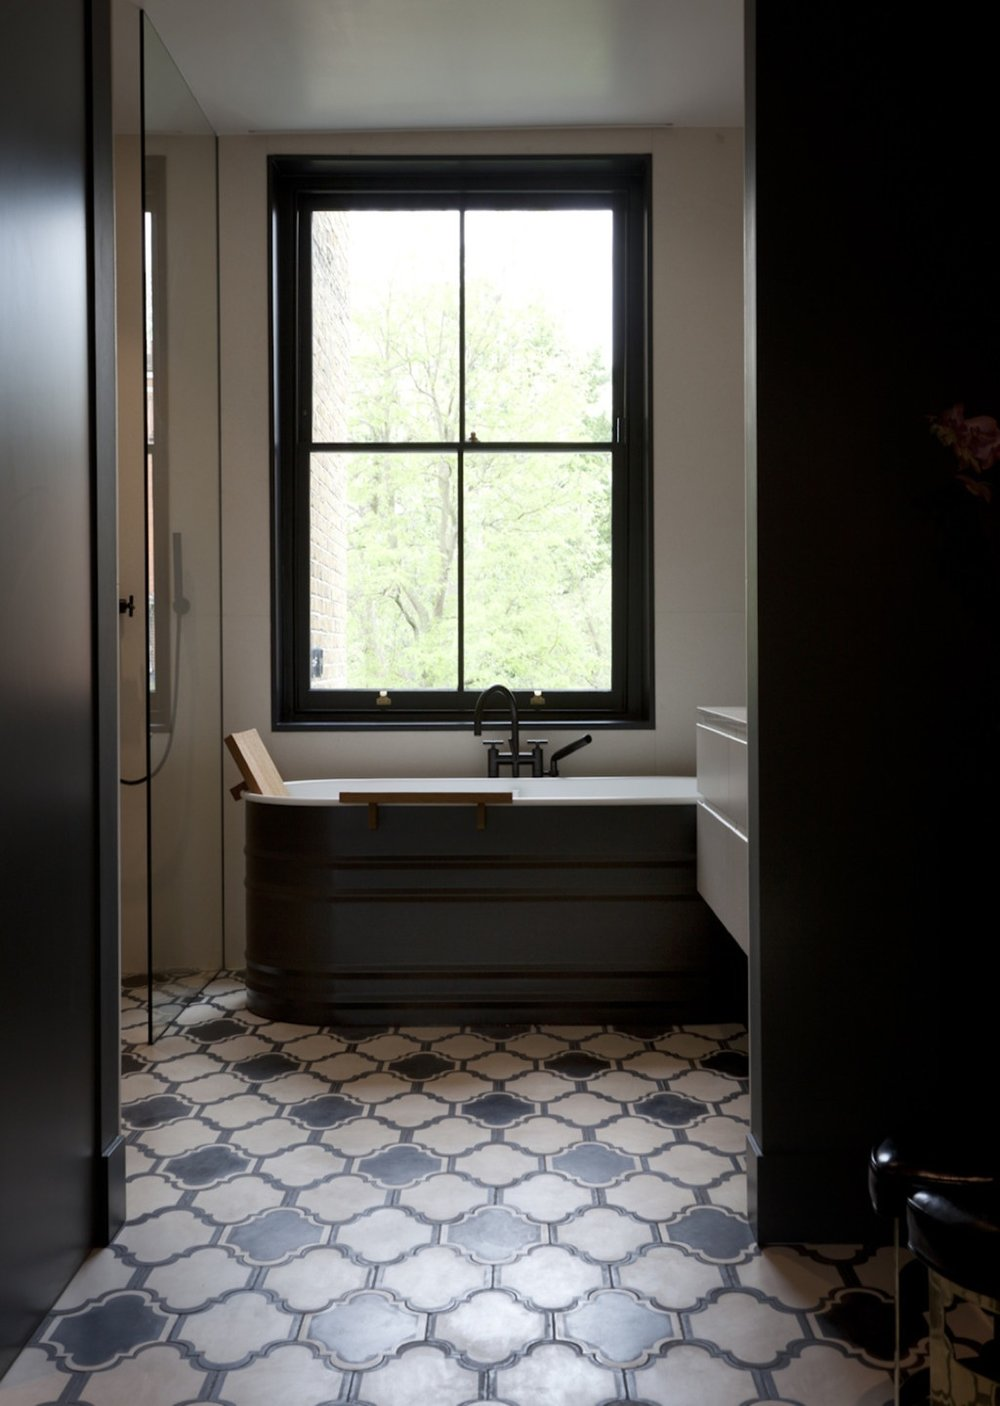 On the floor of the main bathroom, the  Lantern  model from Popham Design echoes the large black window frame and the black fittings.